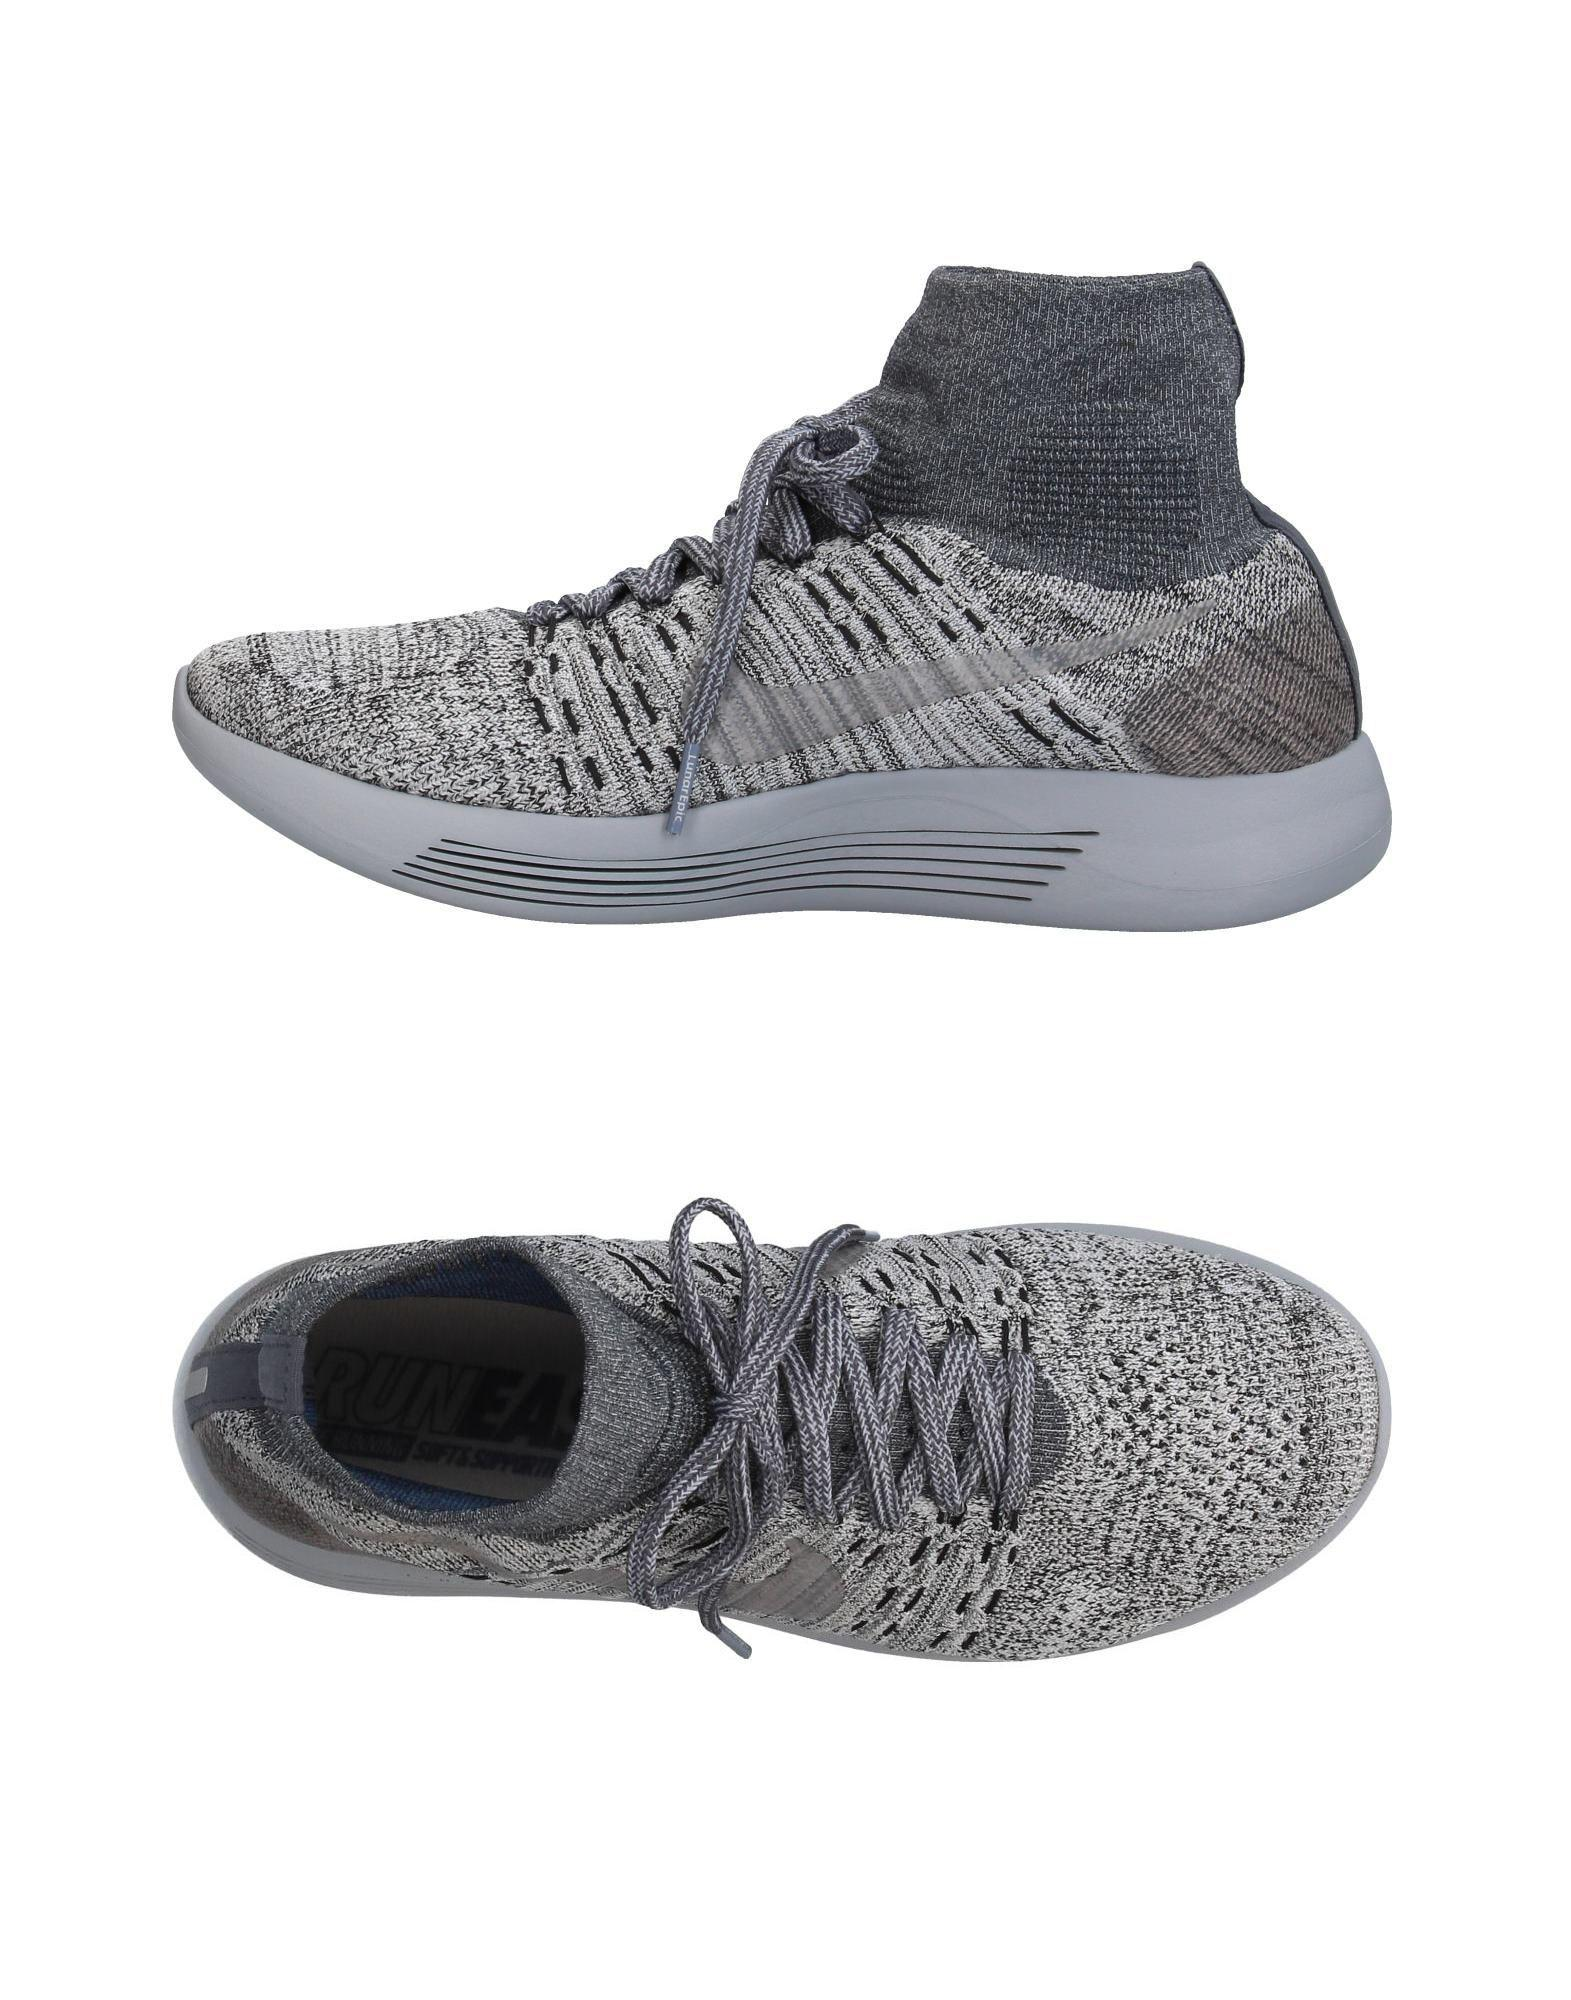 73d2cdd999 Nike High-tops & Sneakers in Gray for Men - Lyst